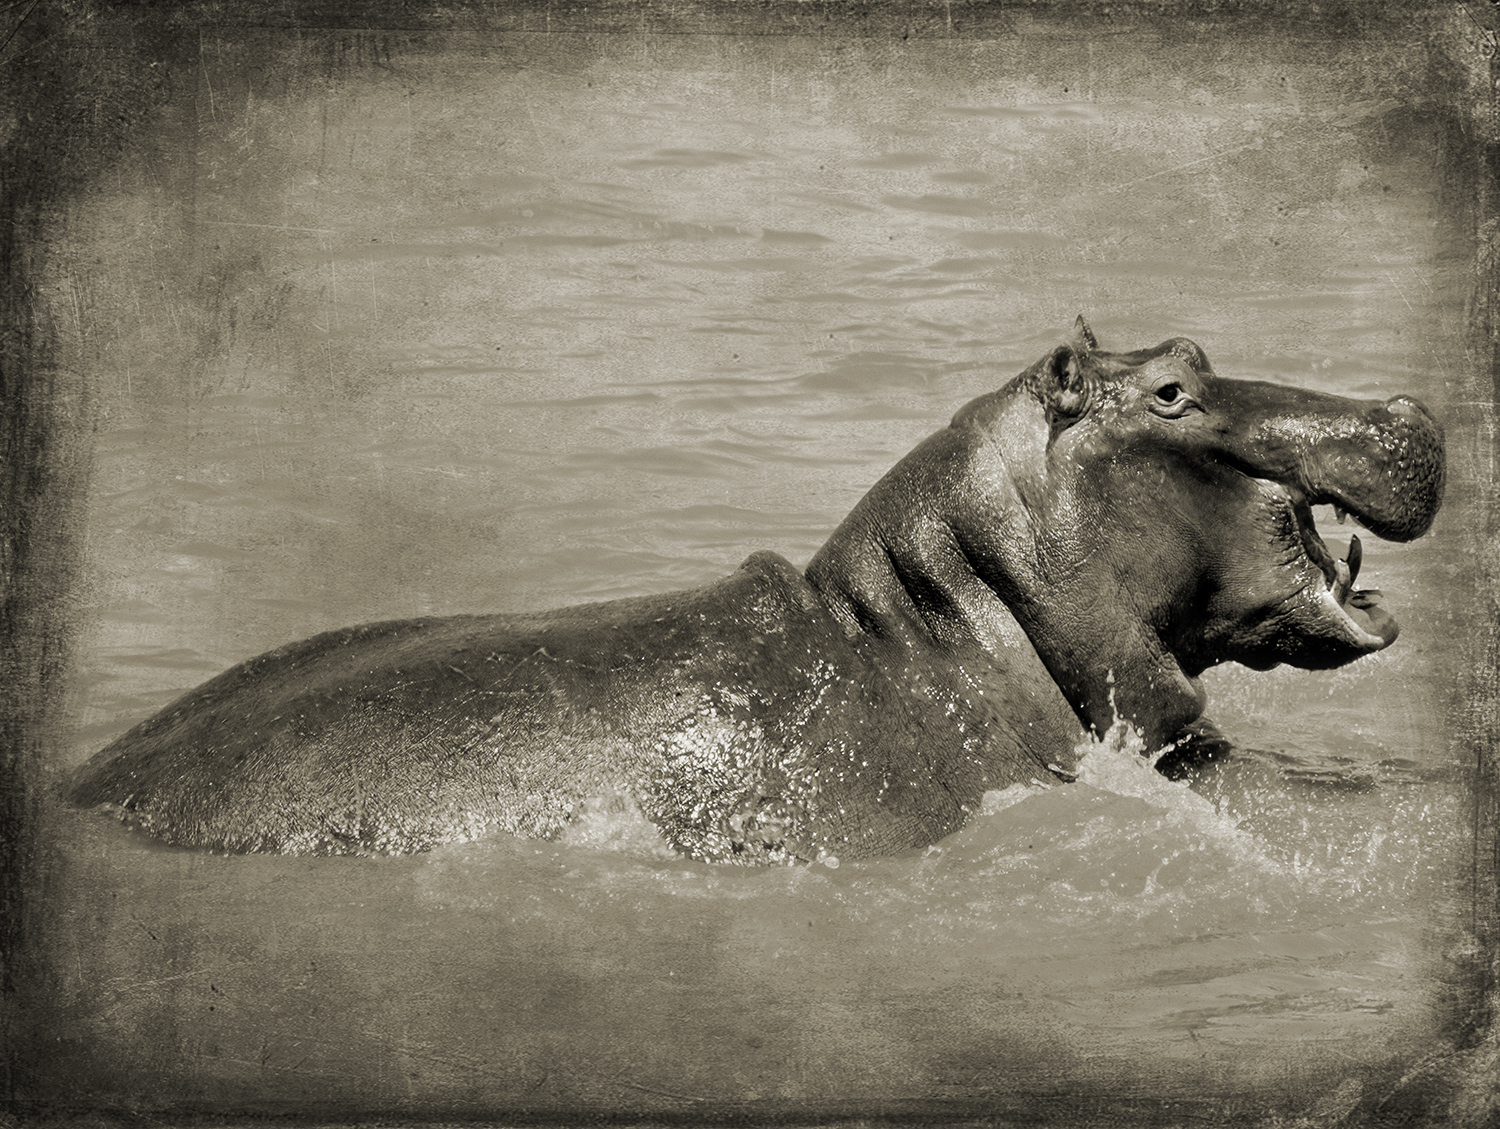 PEC_Toothed Hippo_9945 copy.jpg